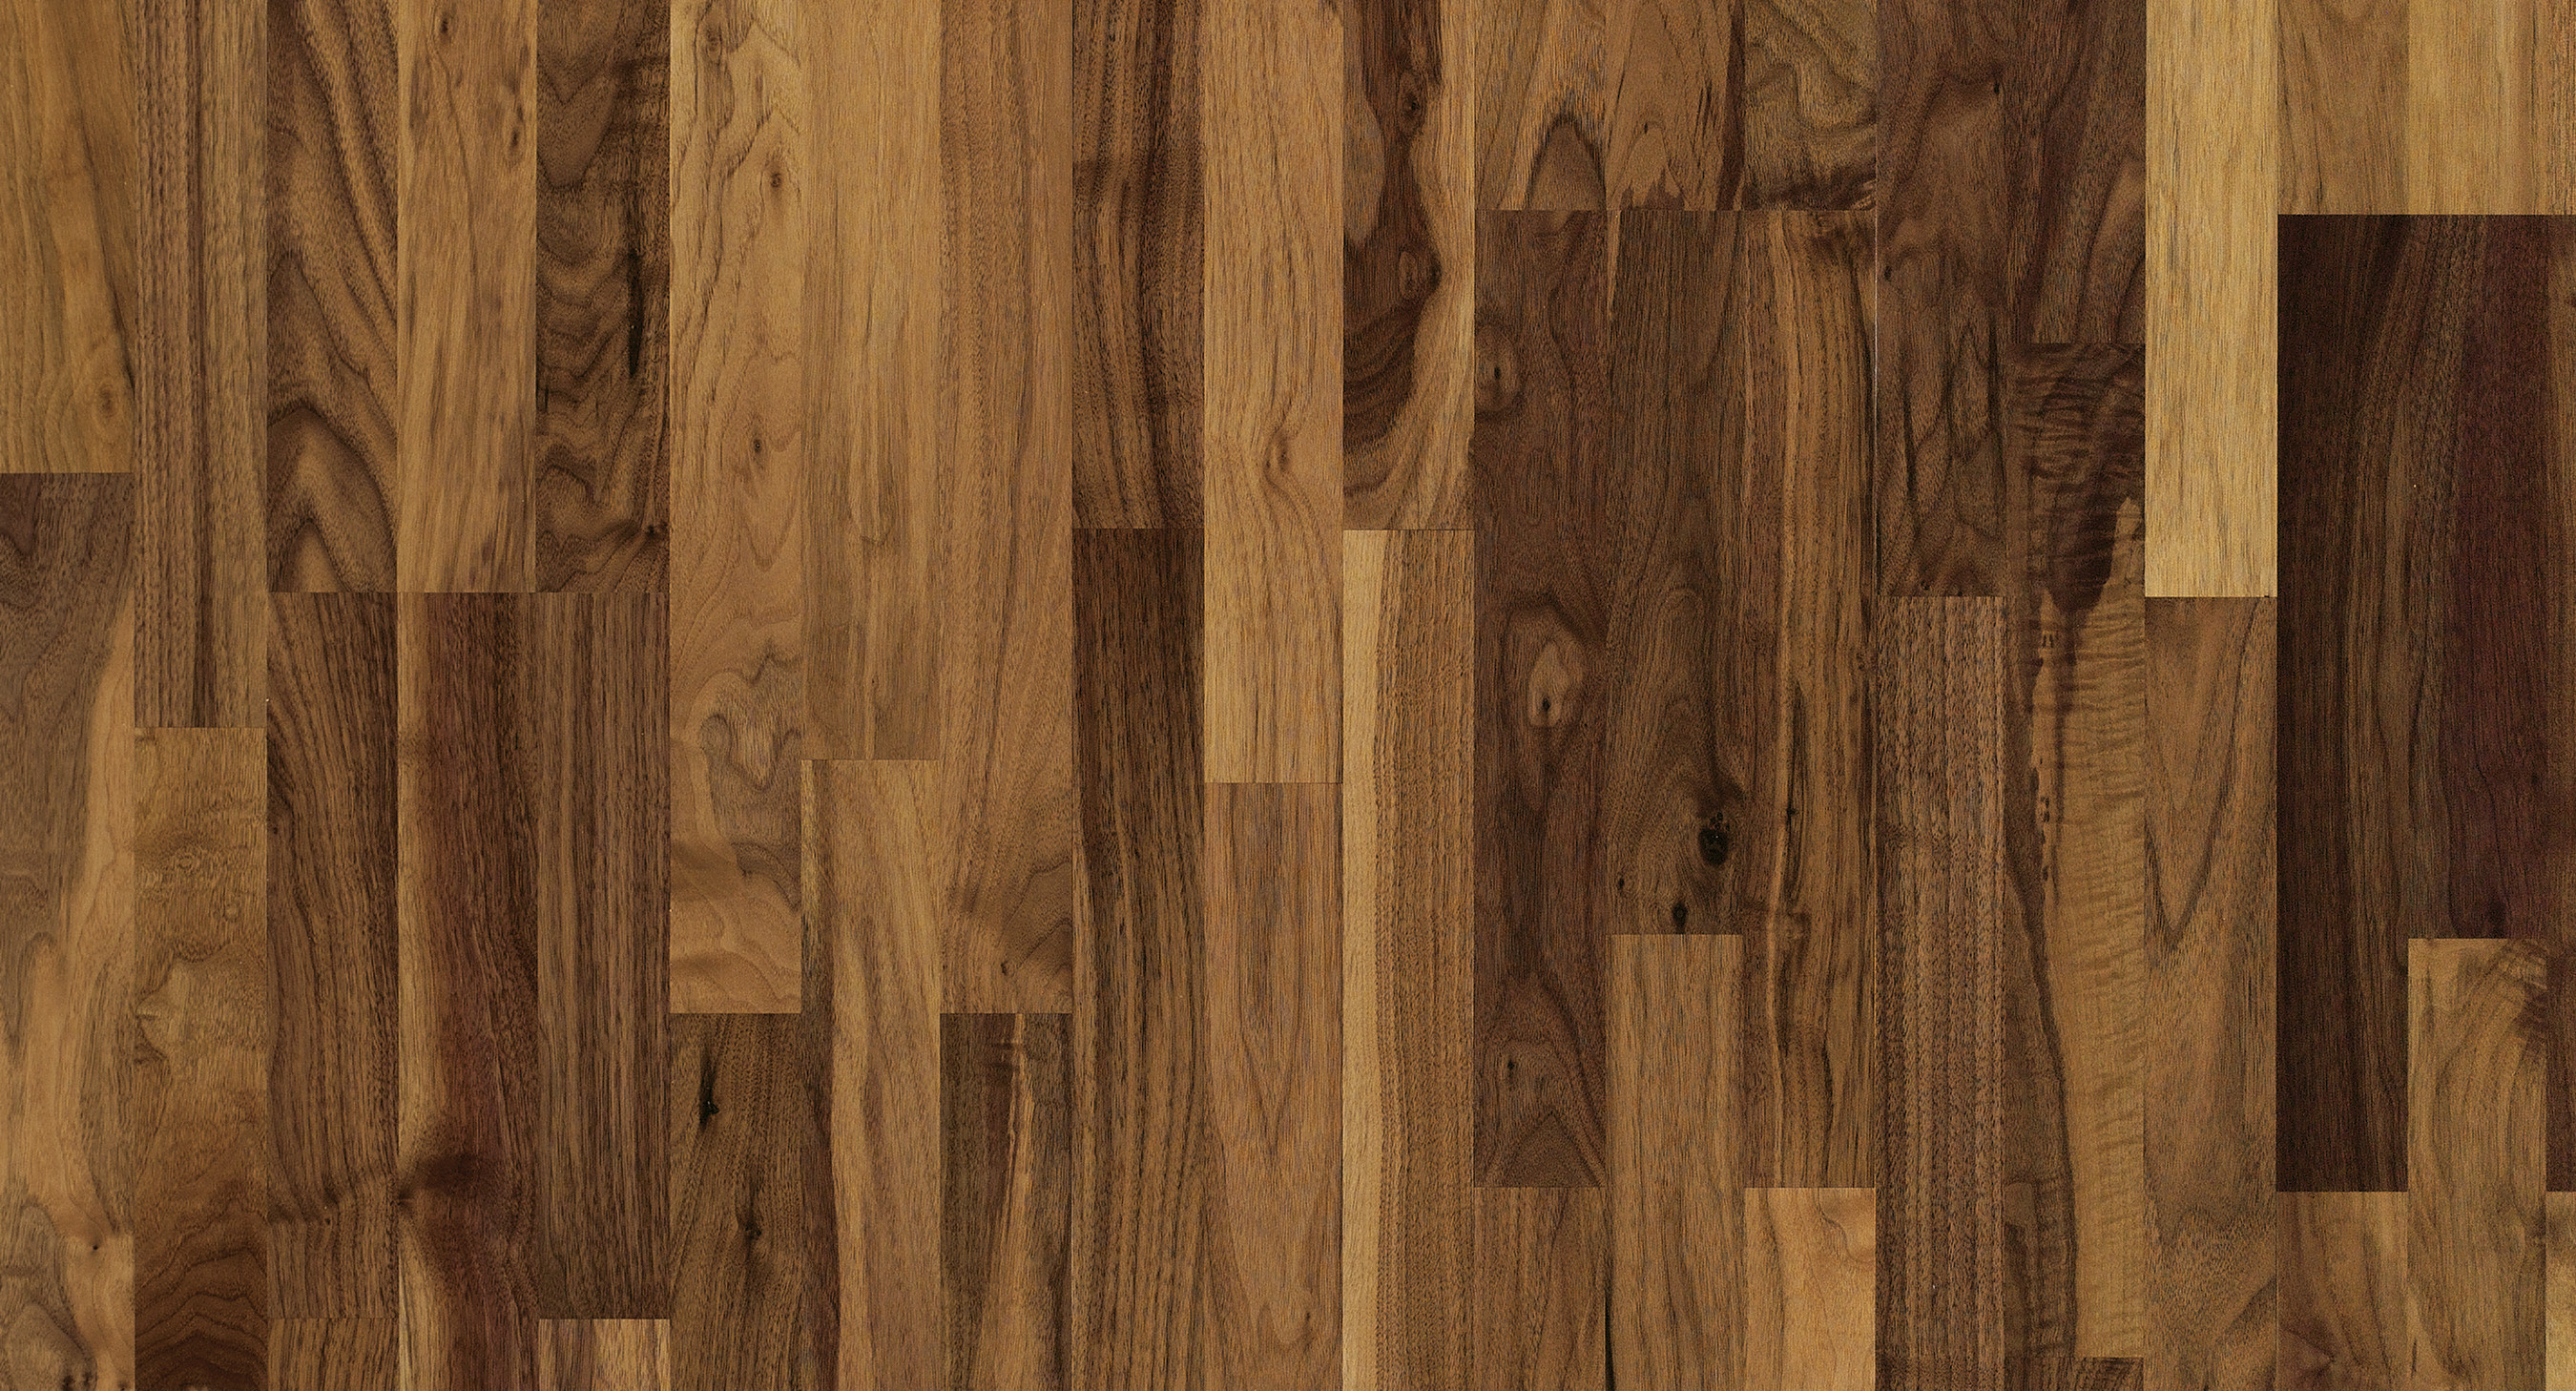 Walnut Oak Hardwood Flooring Of Basic Engineered Wood Flooring Products Parador Inside 45a